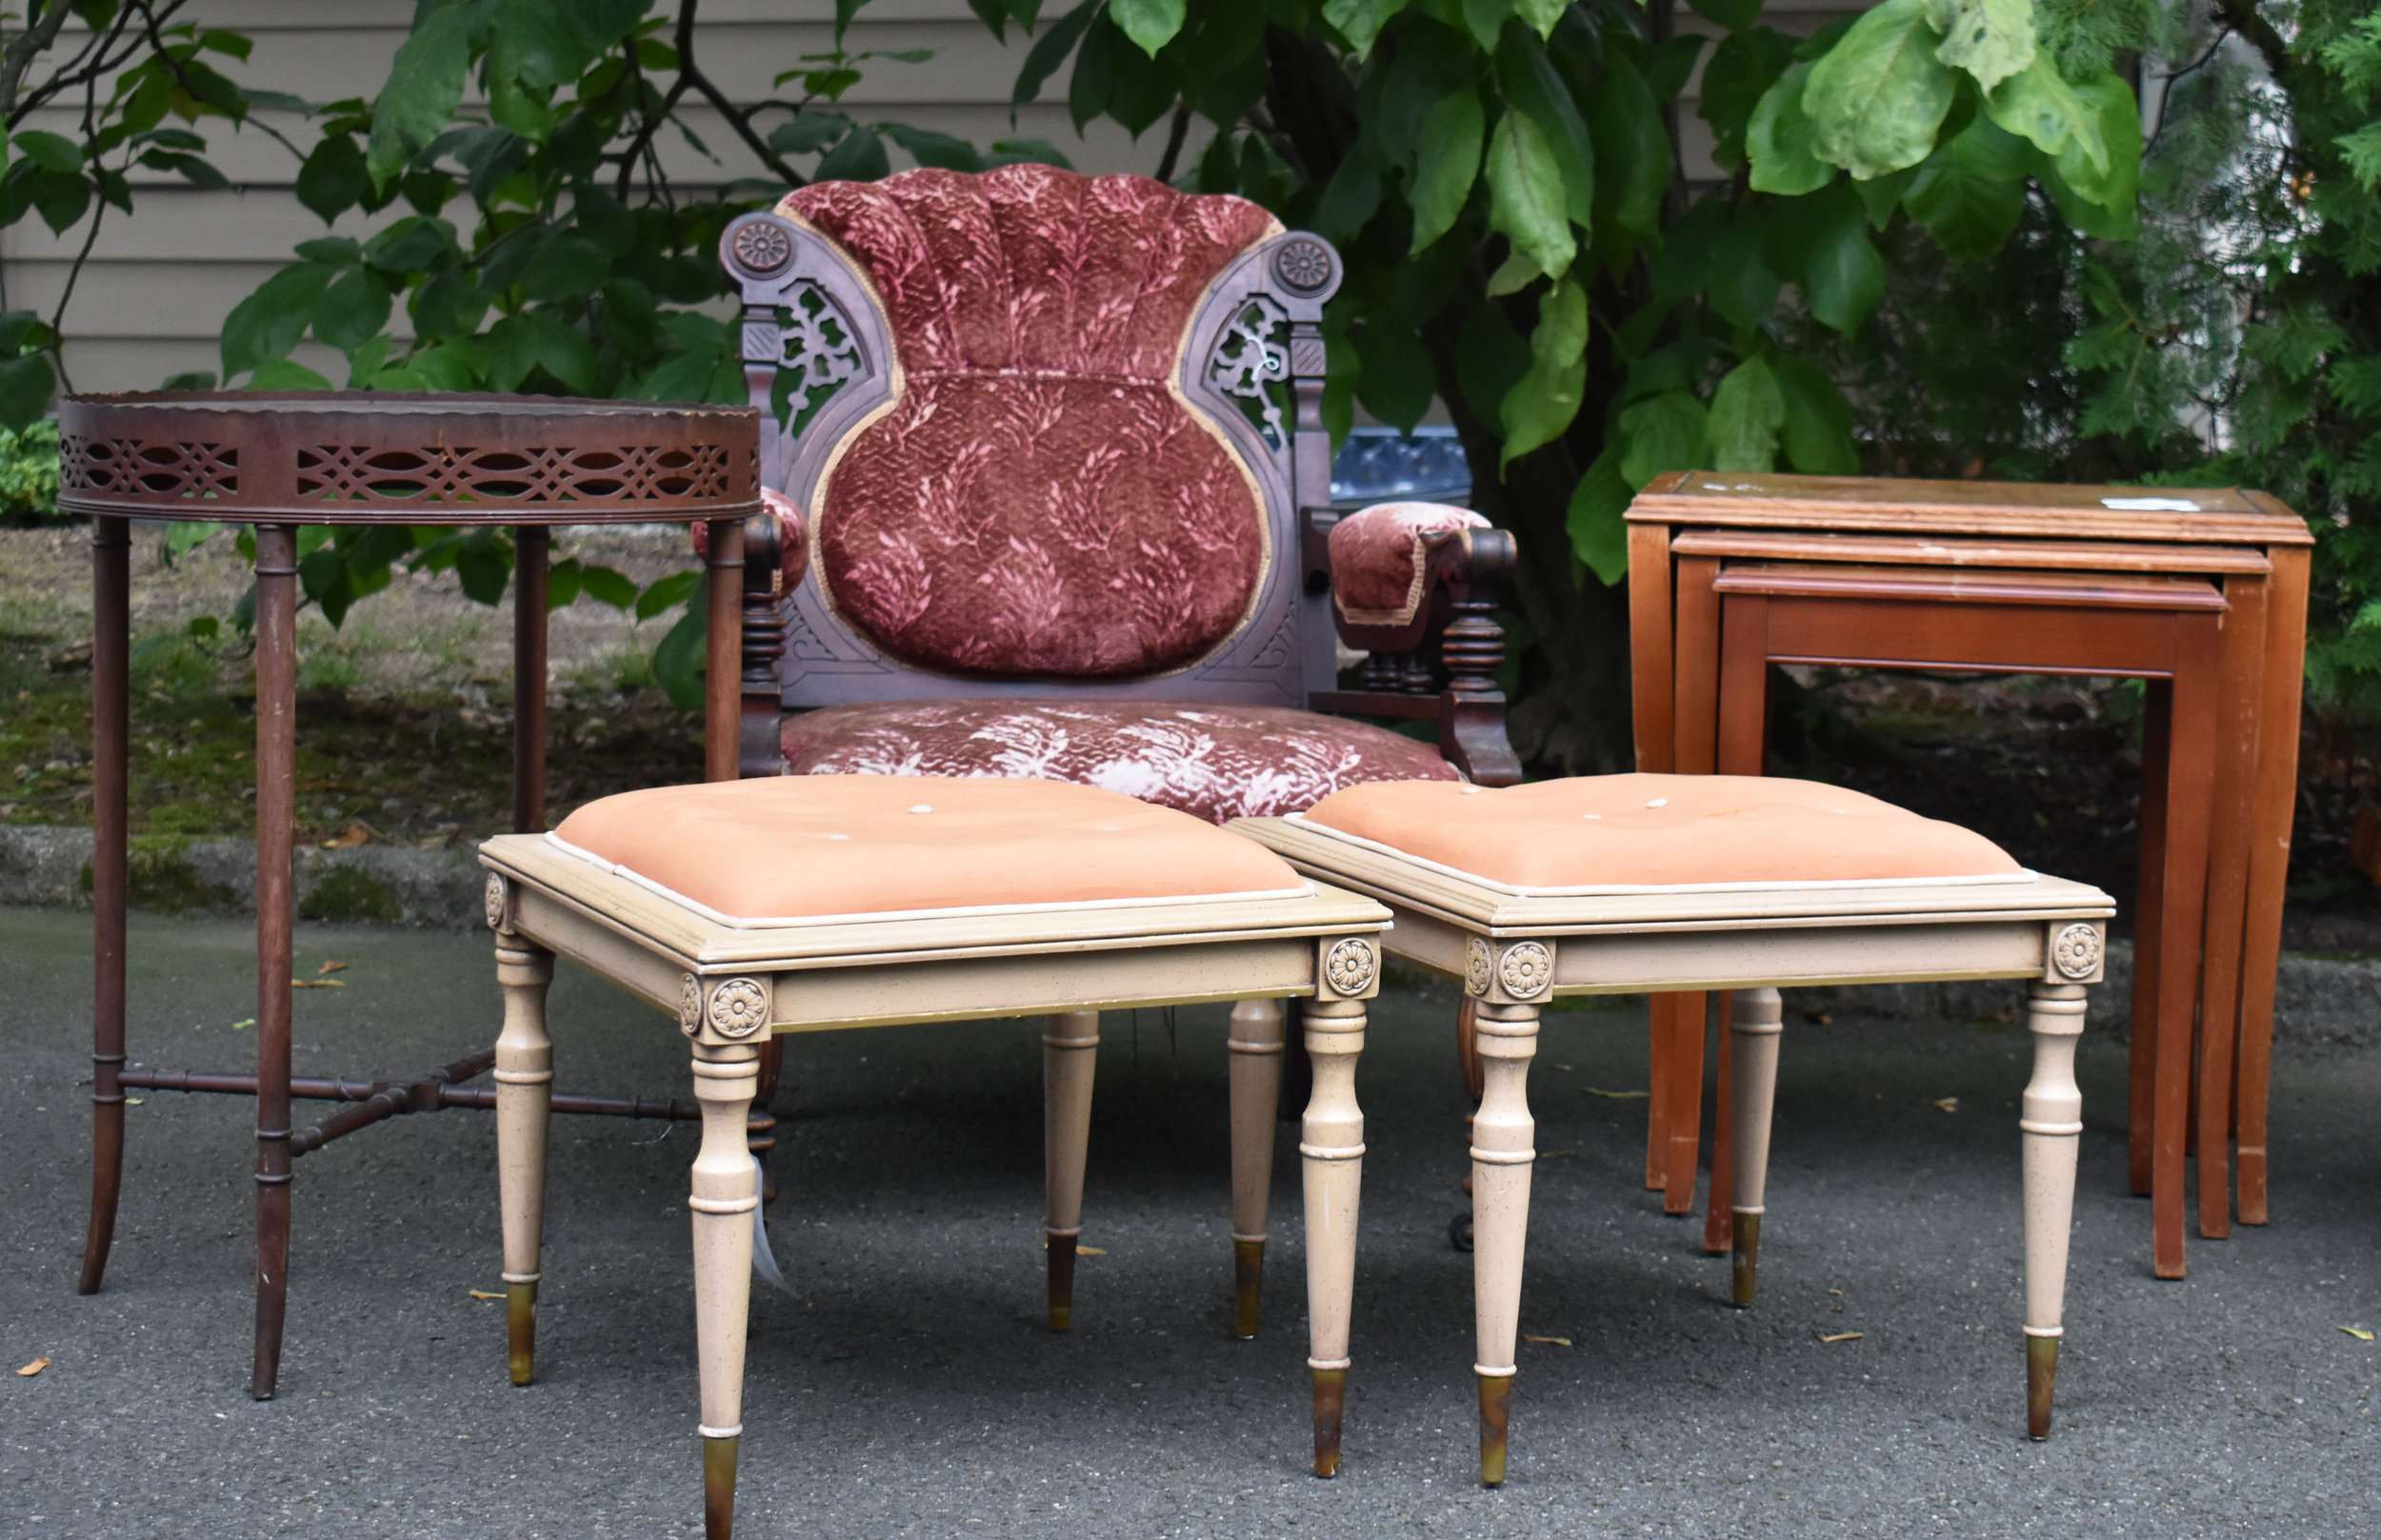 Some of the great finds from Brimfield antiques market (July 2017). Actually, the big chair is from Searsport, Maine.